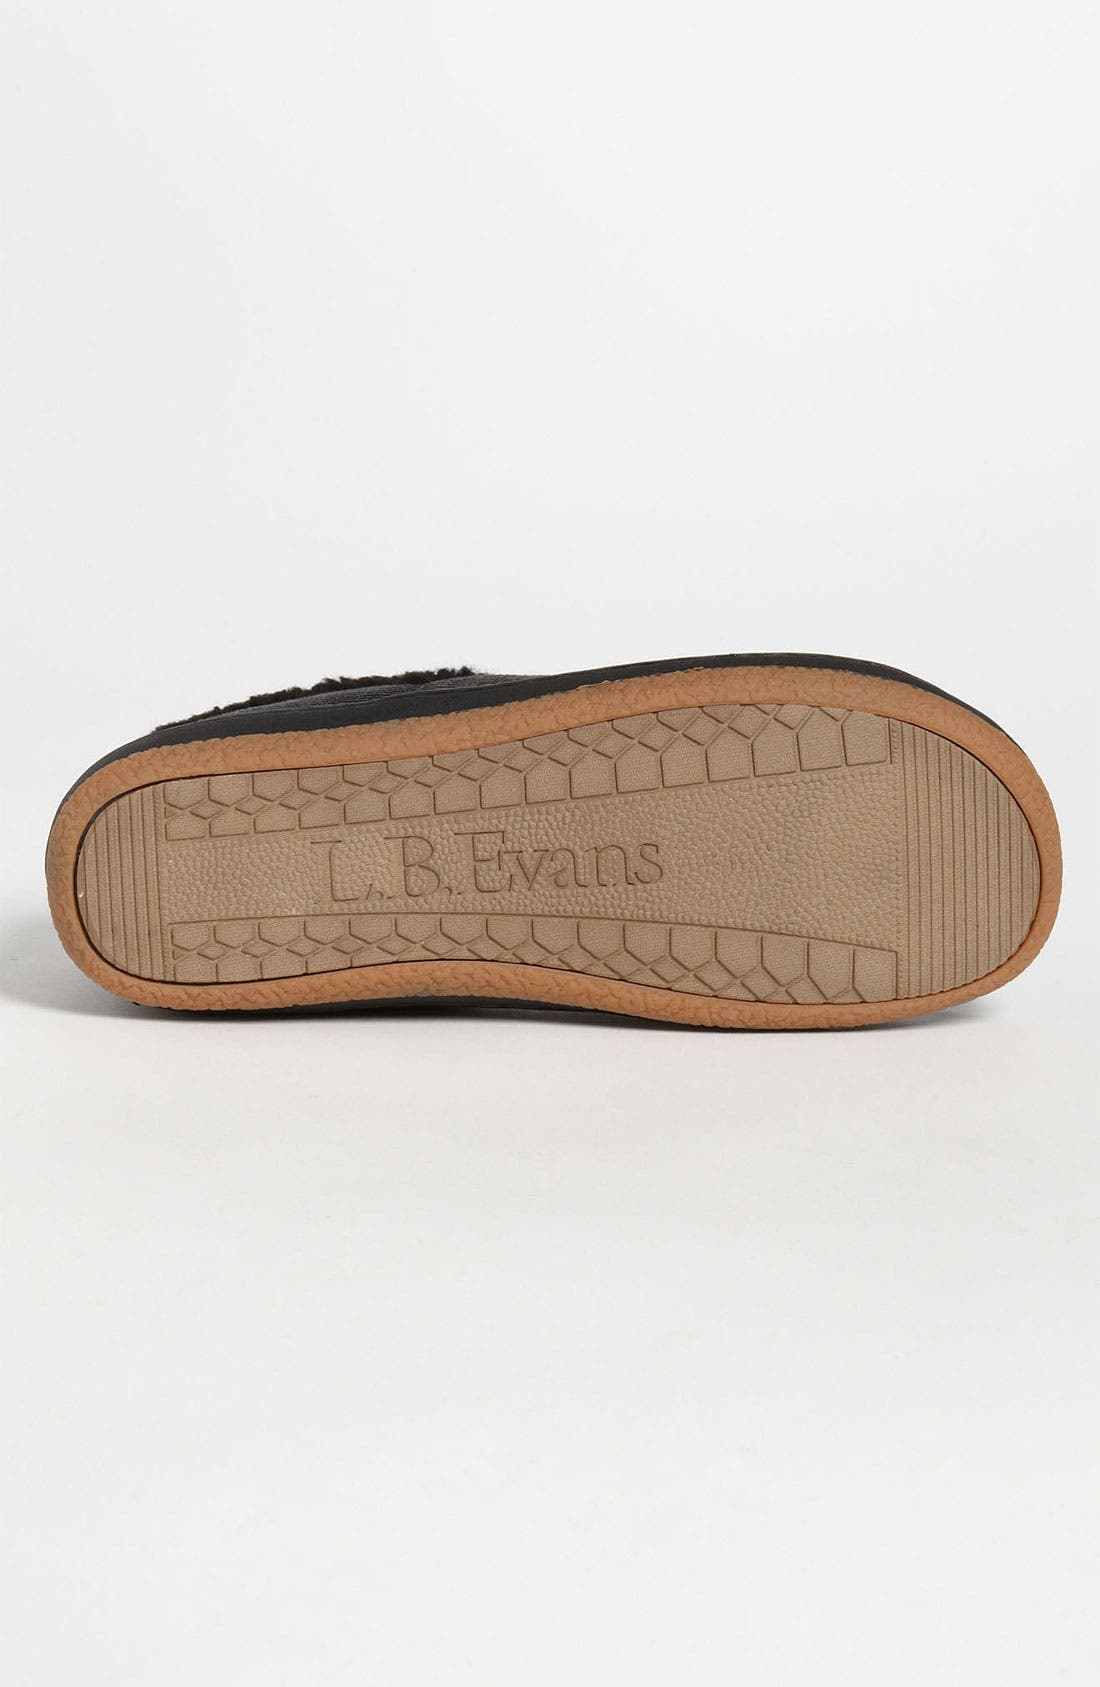 Alternate Image 4  - L.B. Evans 'Charlie' Slipper (Online Only)